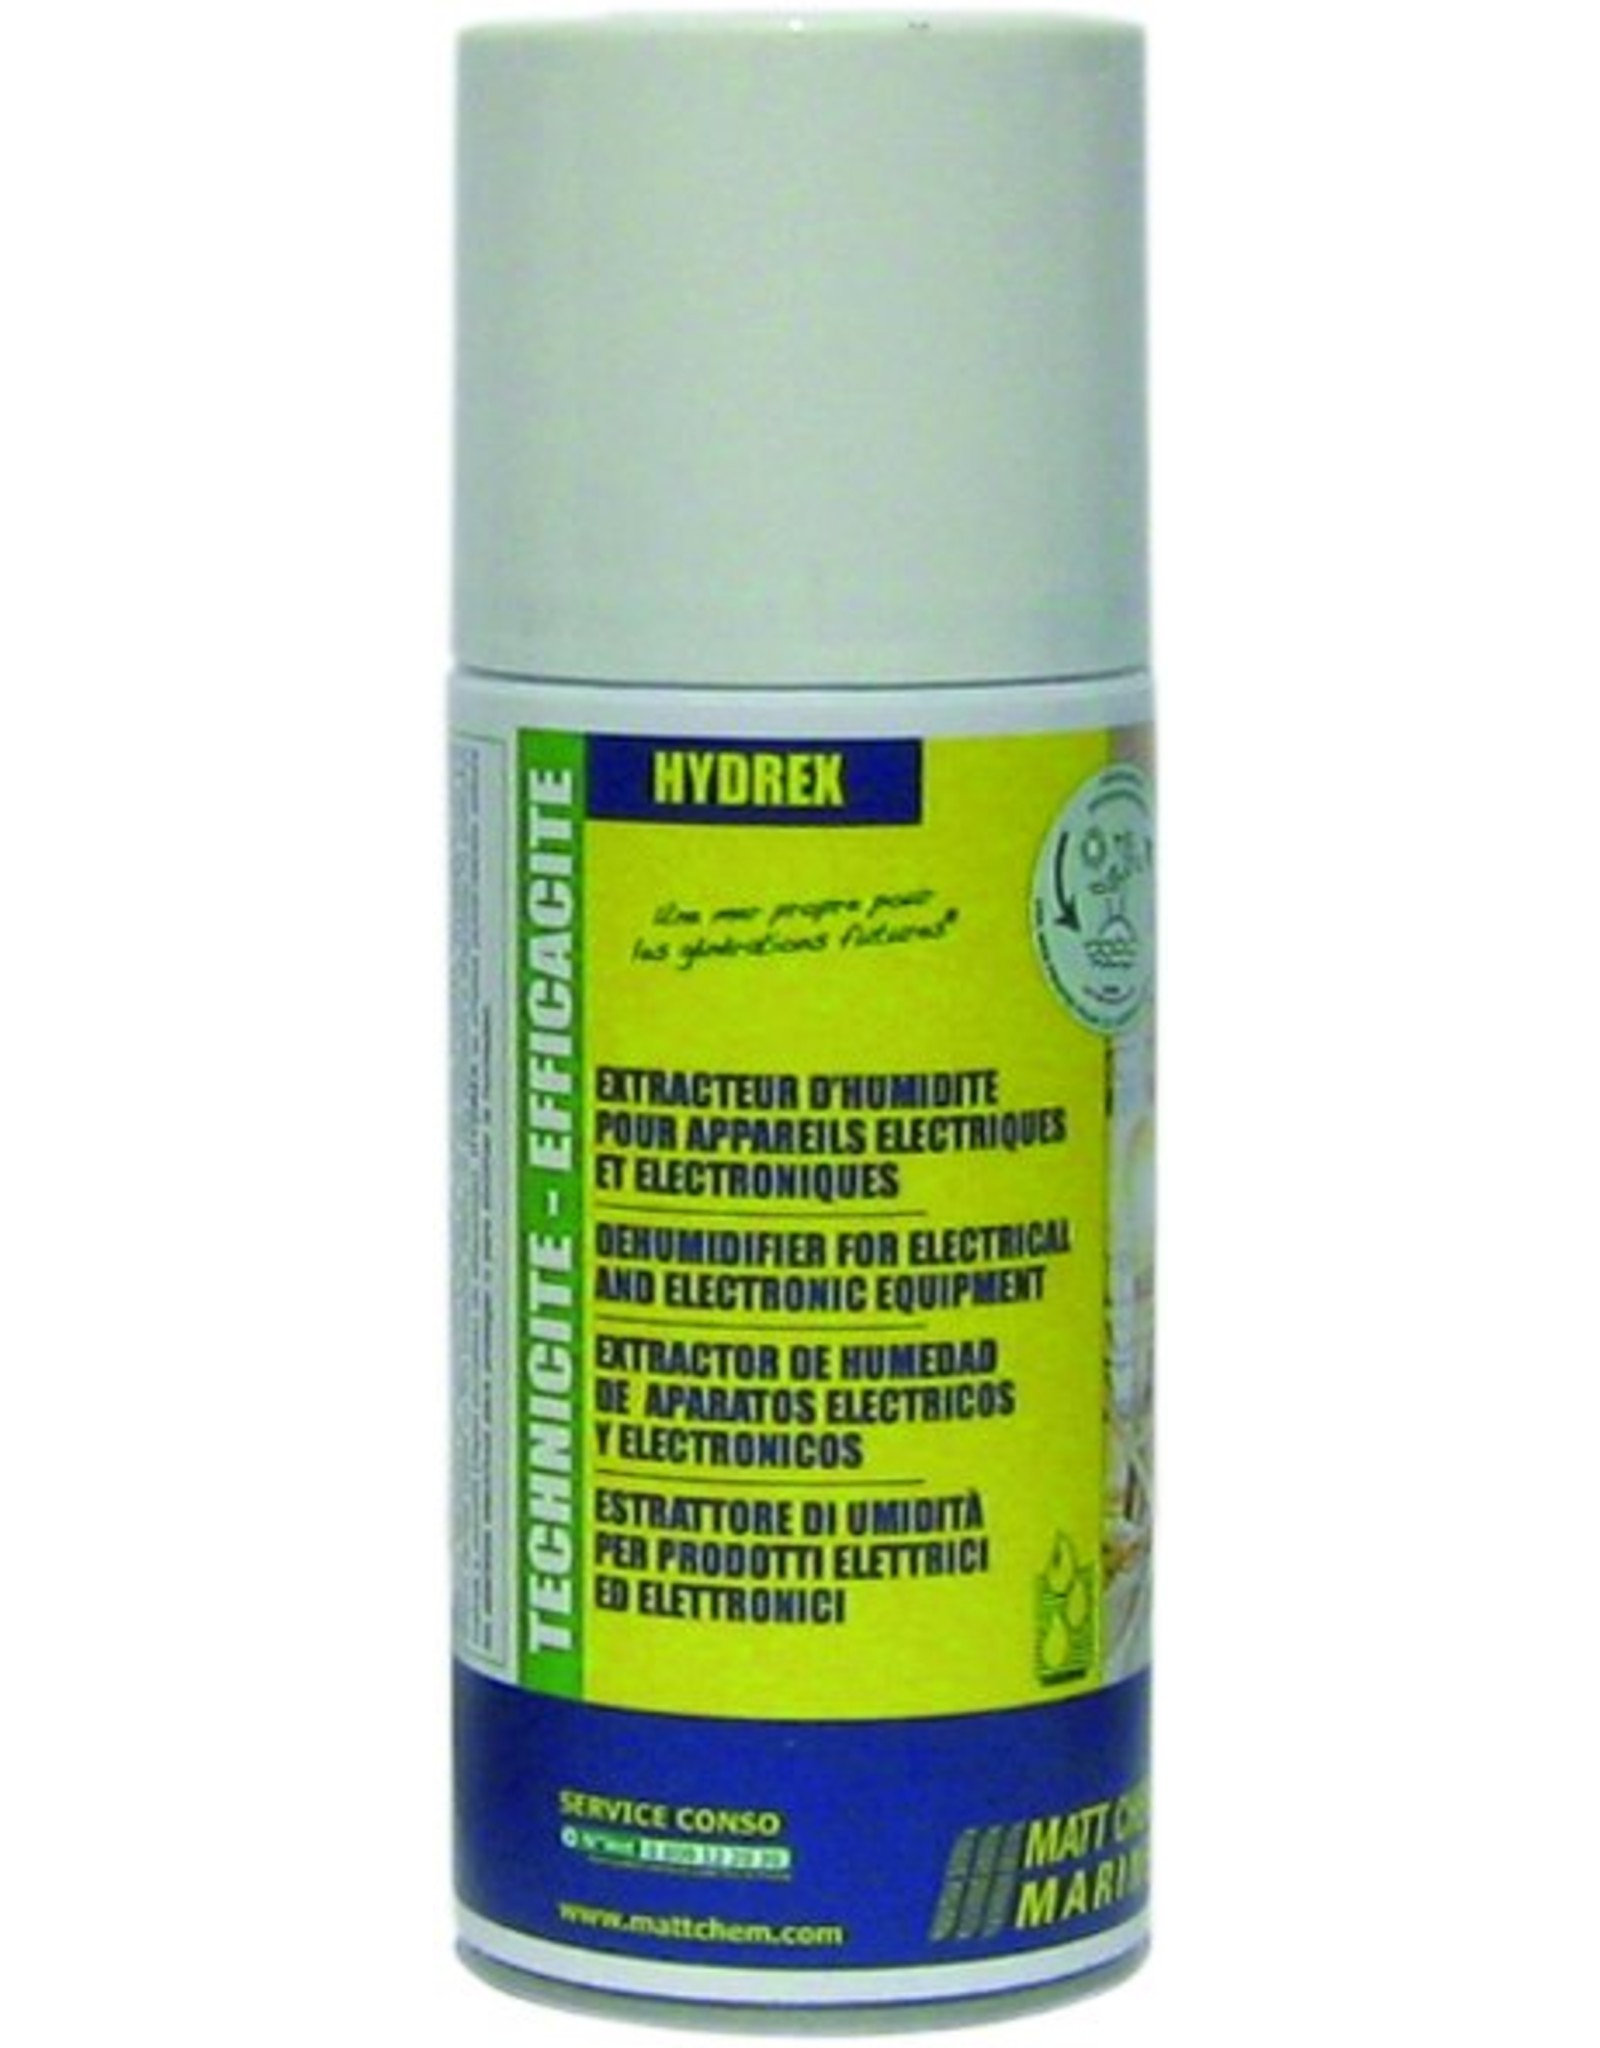 Matt Chem Marine HYDREX 150ml aerosol